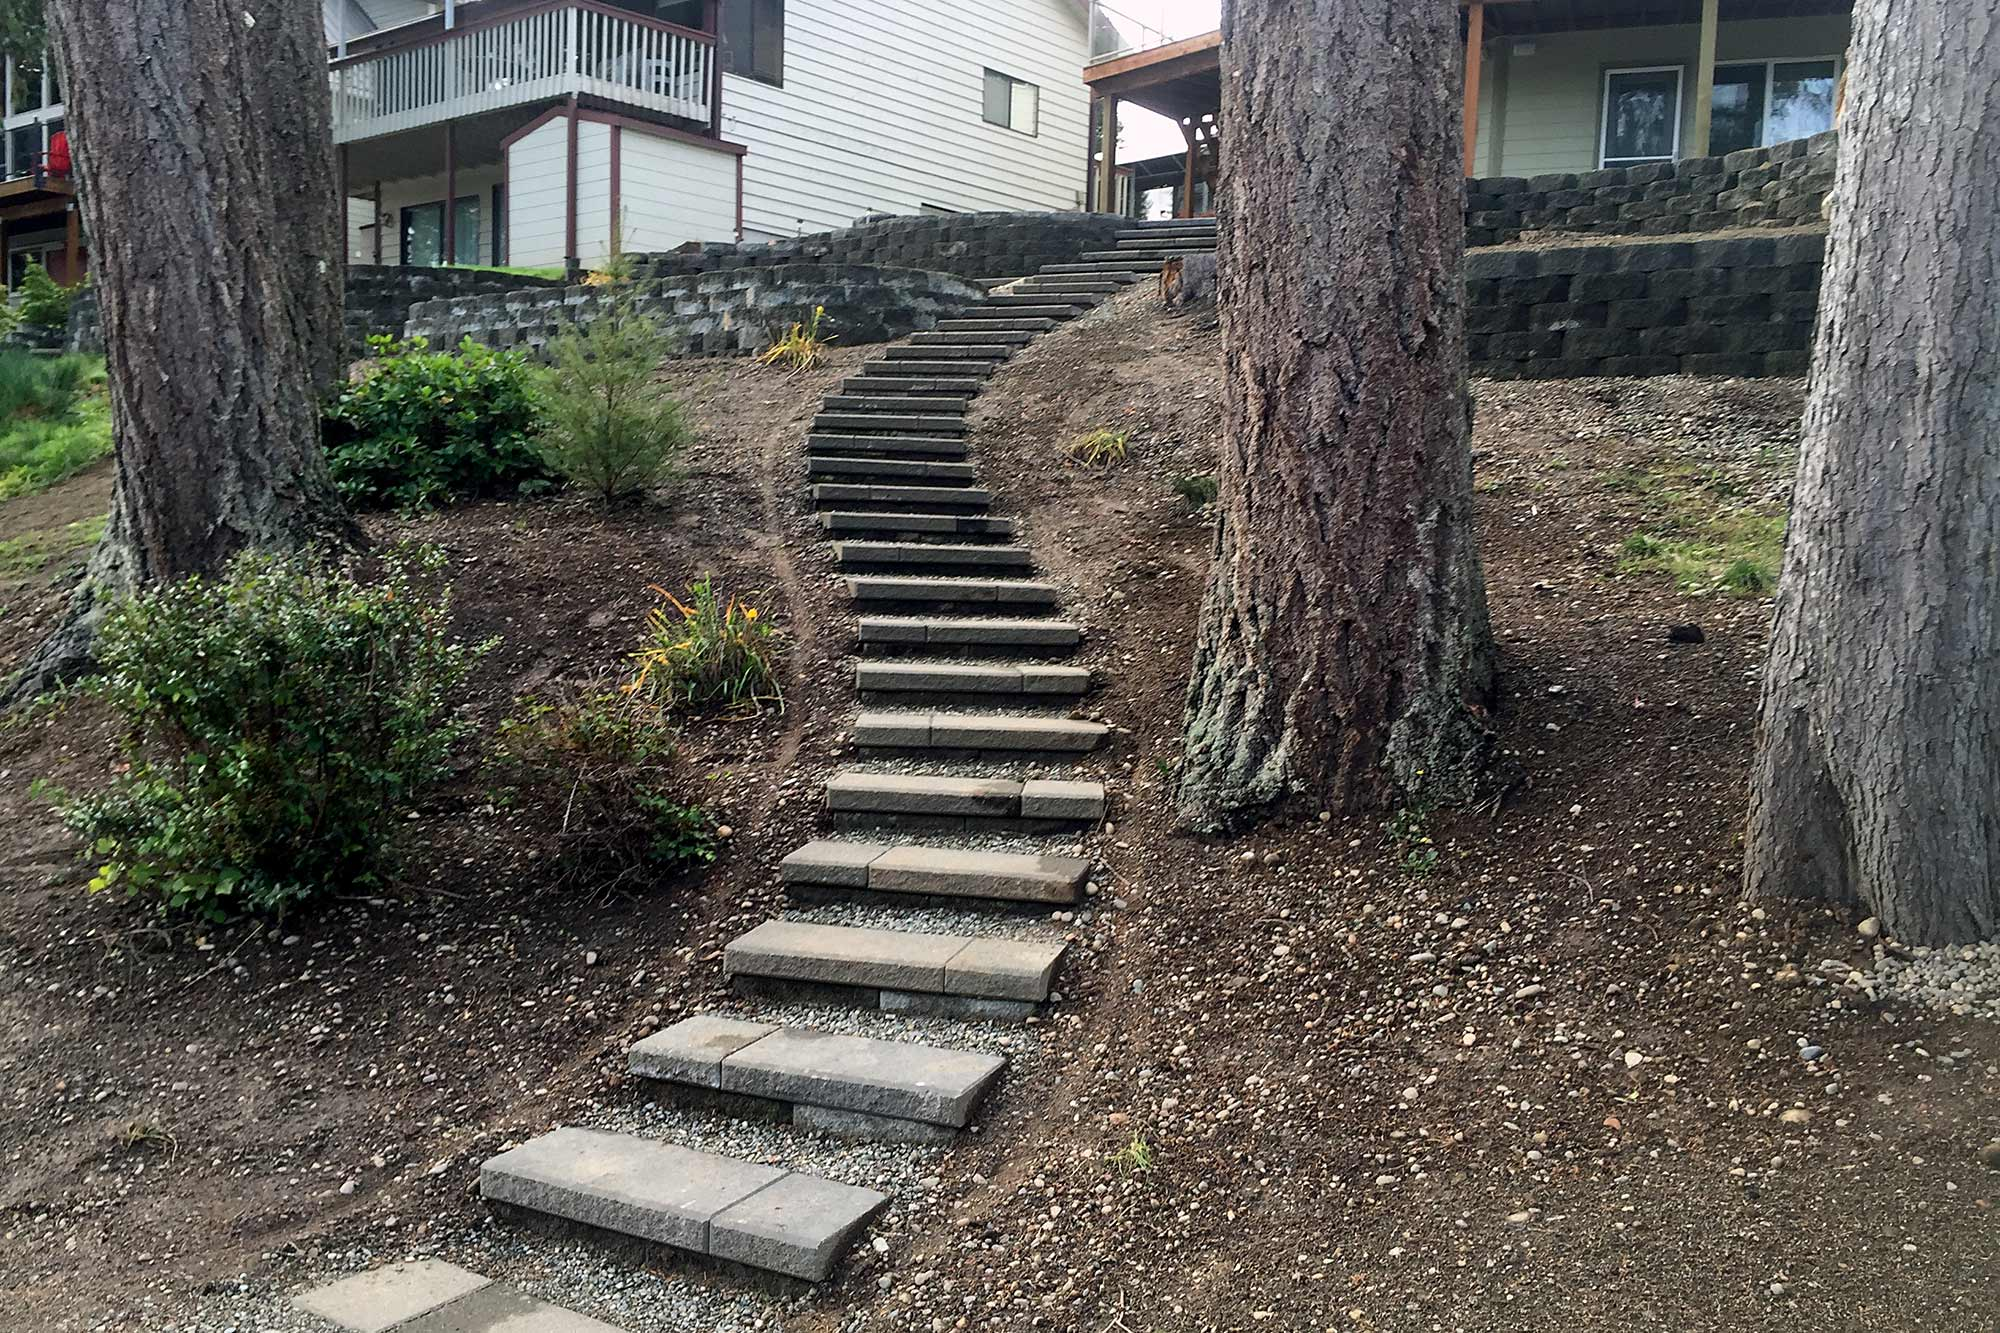 Staircase and retaining walls